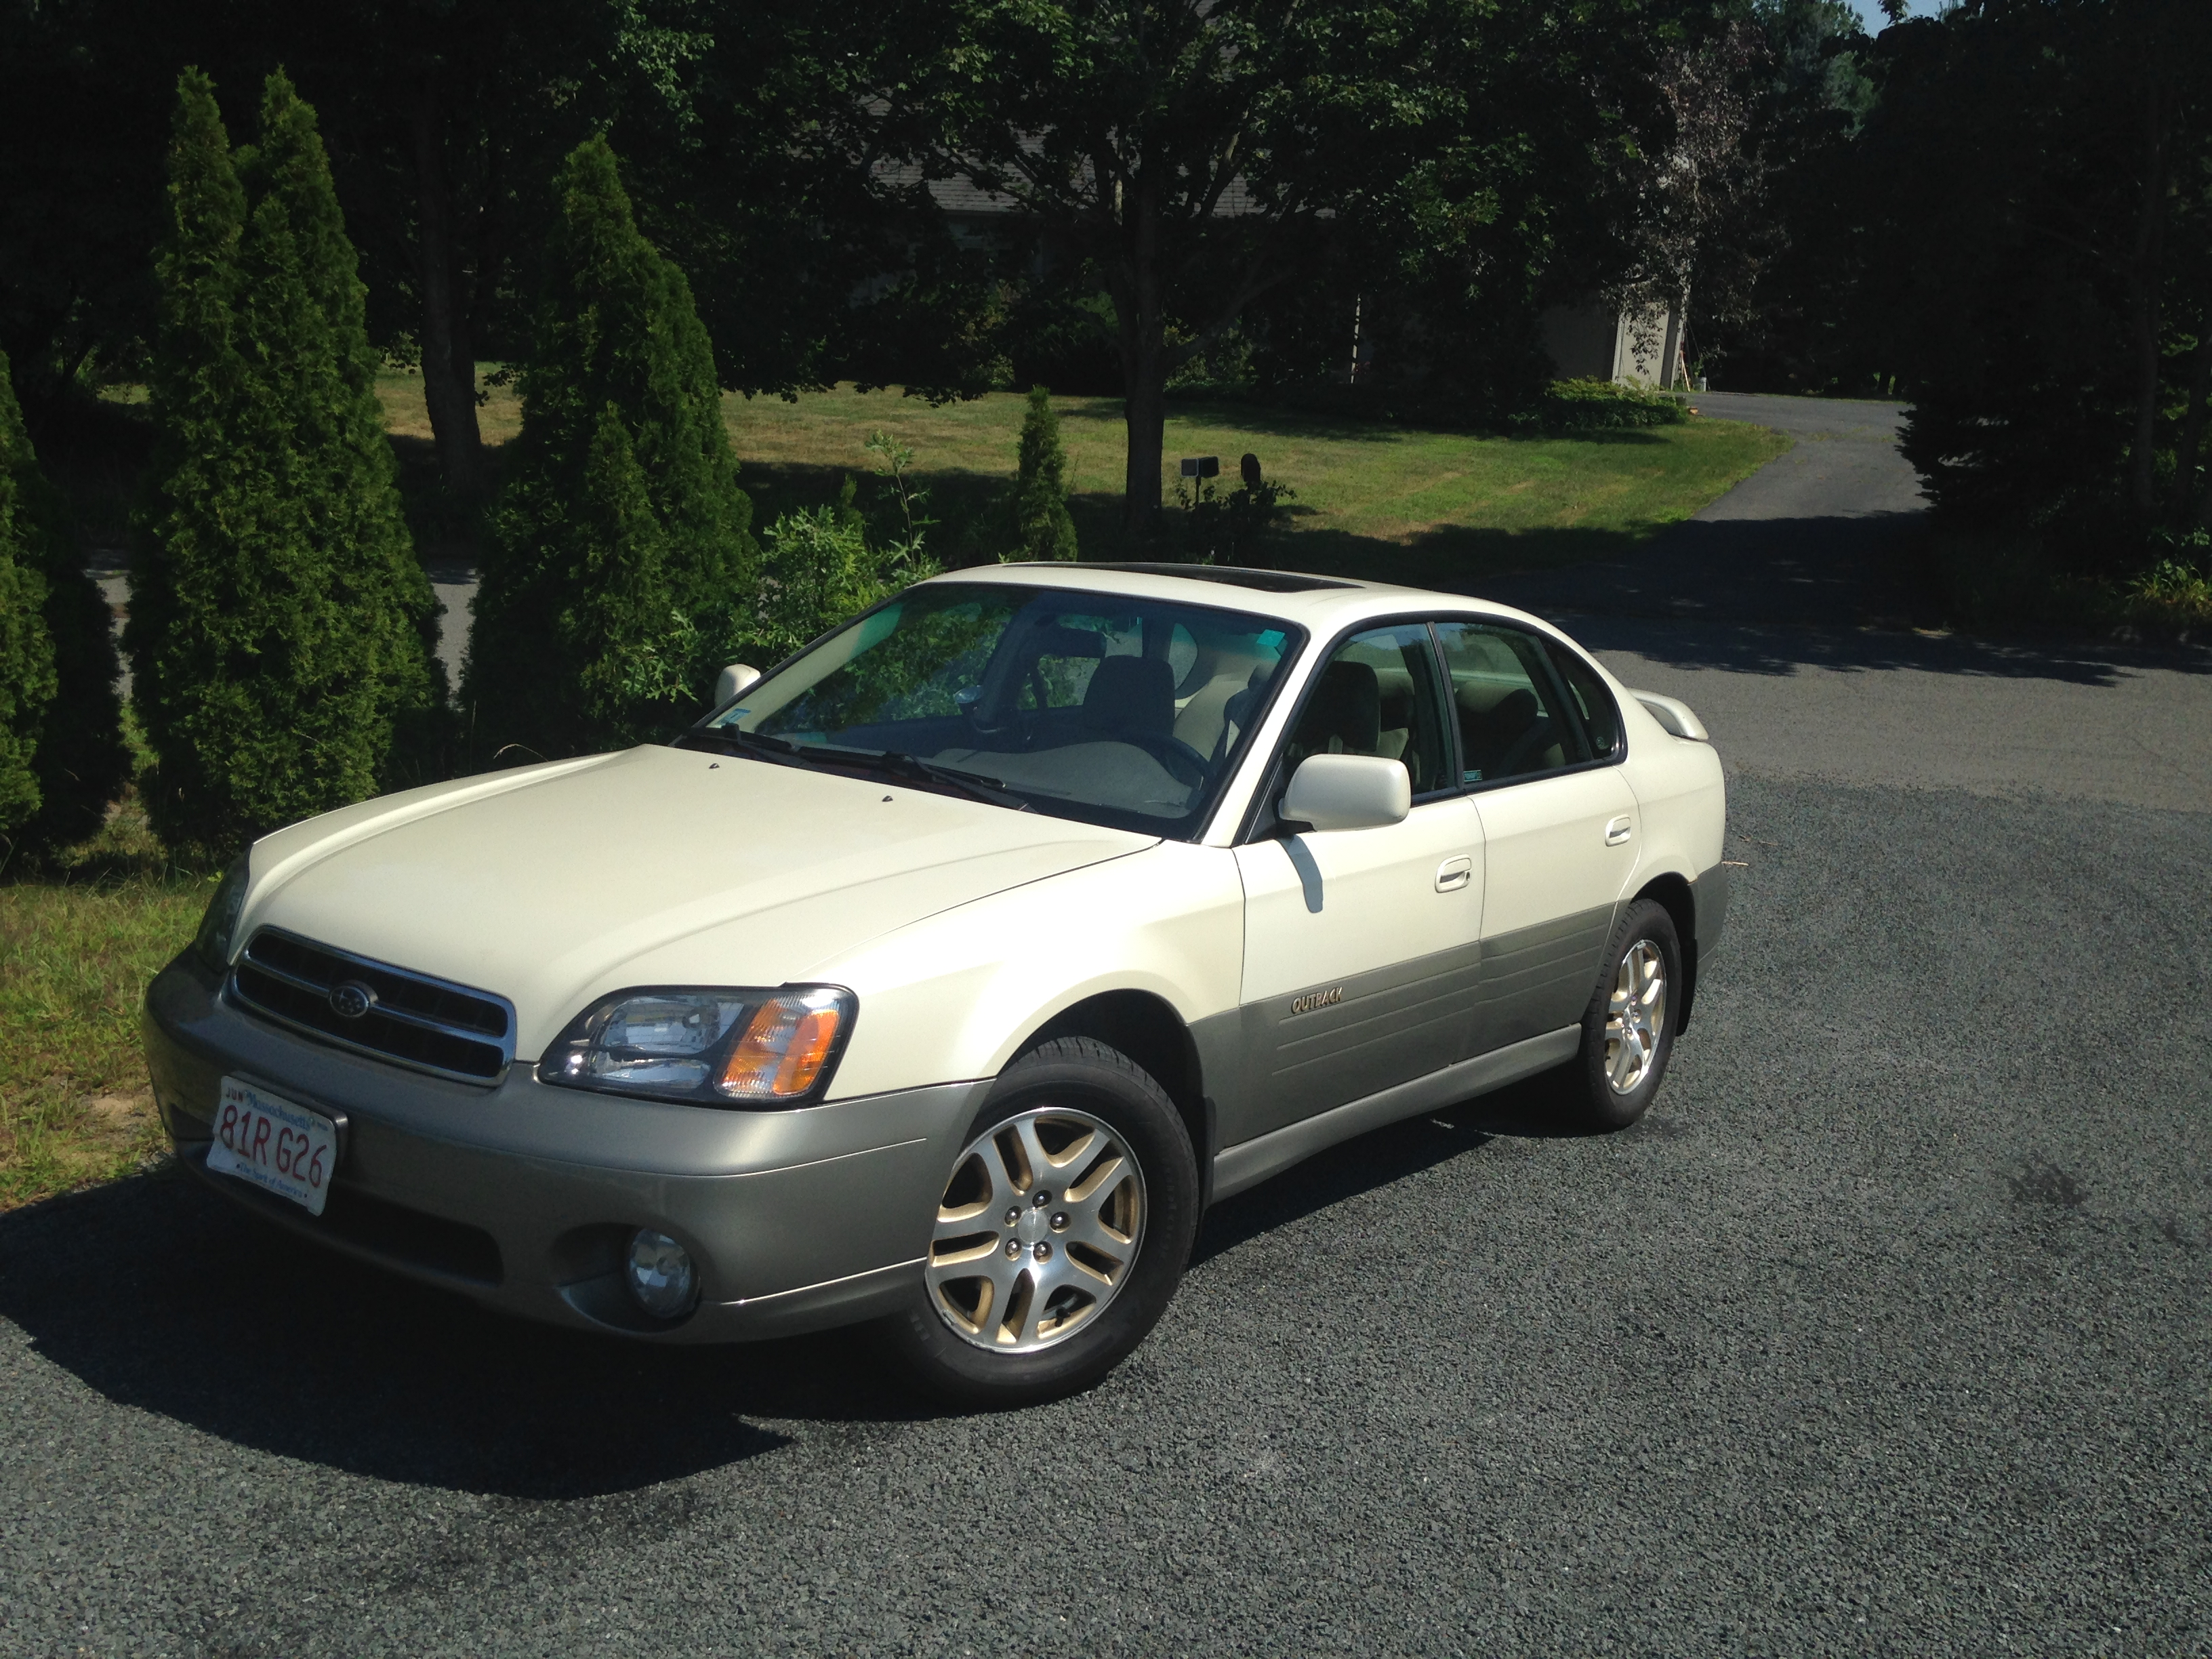 New member new car 2002 subaru legacy outback sedan subaru this image has been resized click this bar to view the full image the original image is sized 3264x2448 vanachro Image collections